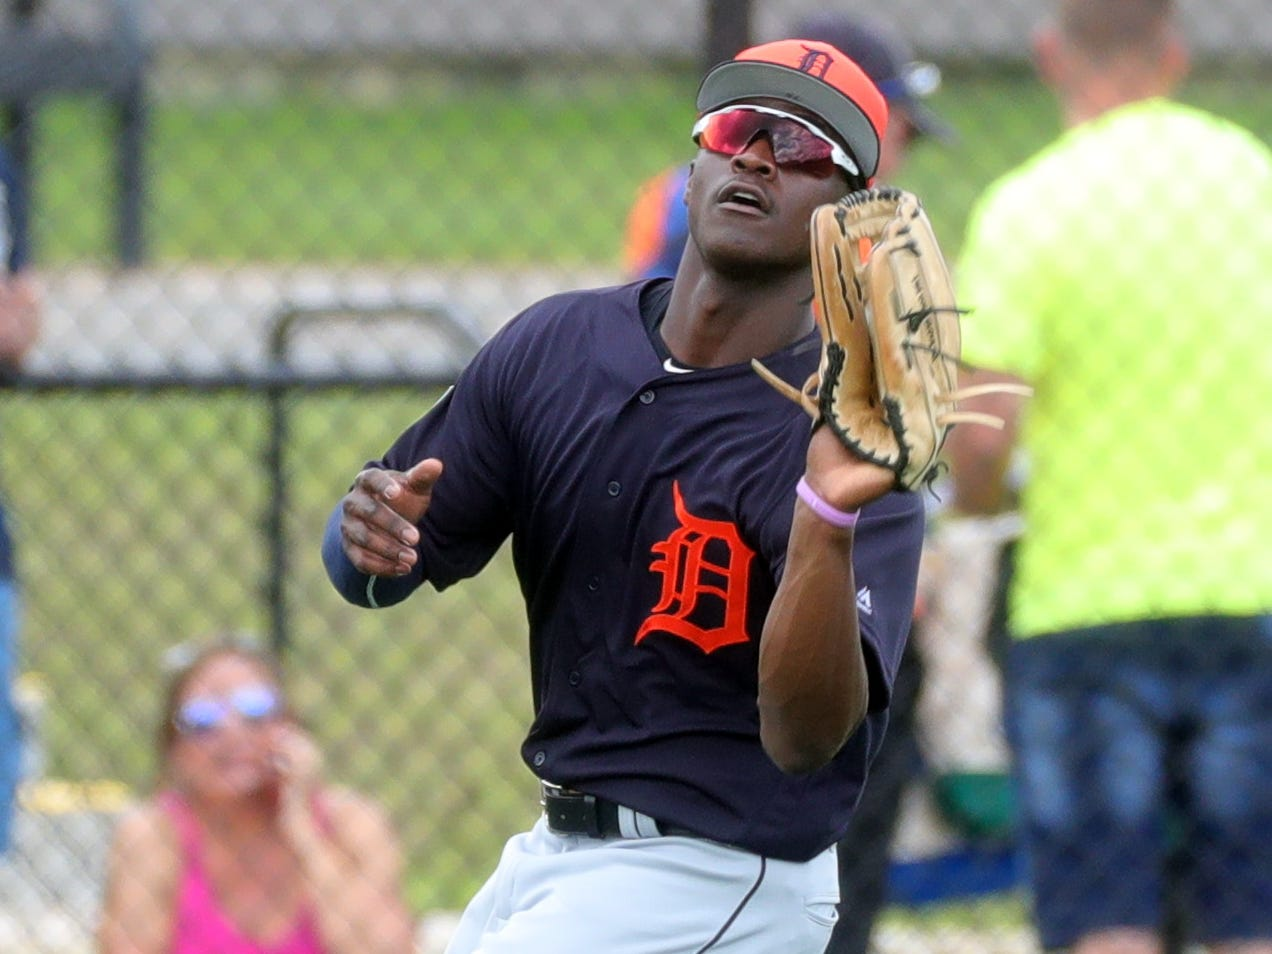 Detroit Tigers outfielder Daz Cameron catches a fly ball during spring training Wednesday, Feb. 20, 2019, at Joker Marchant Stadium in Lakeland, Fla.